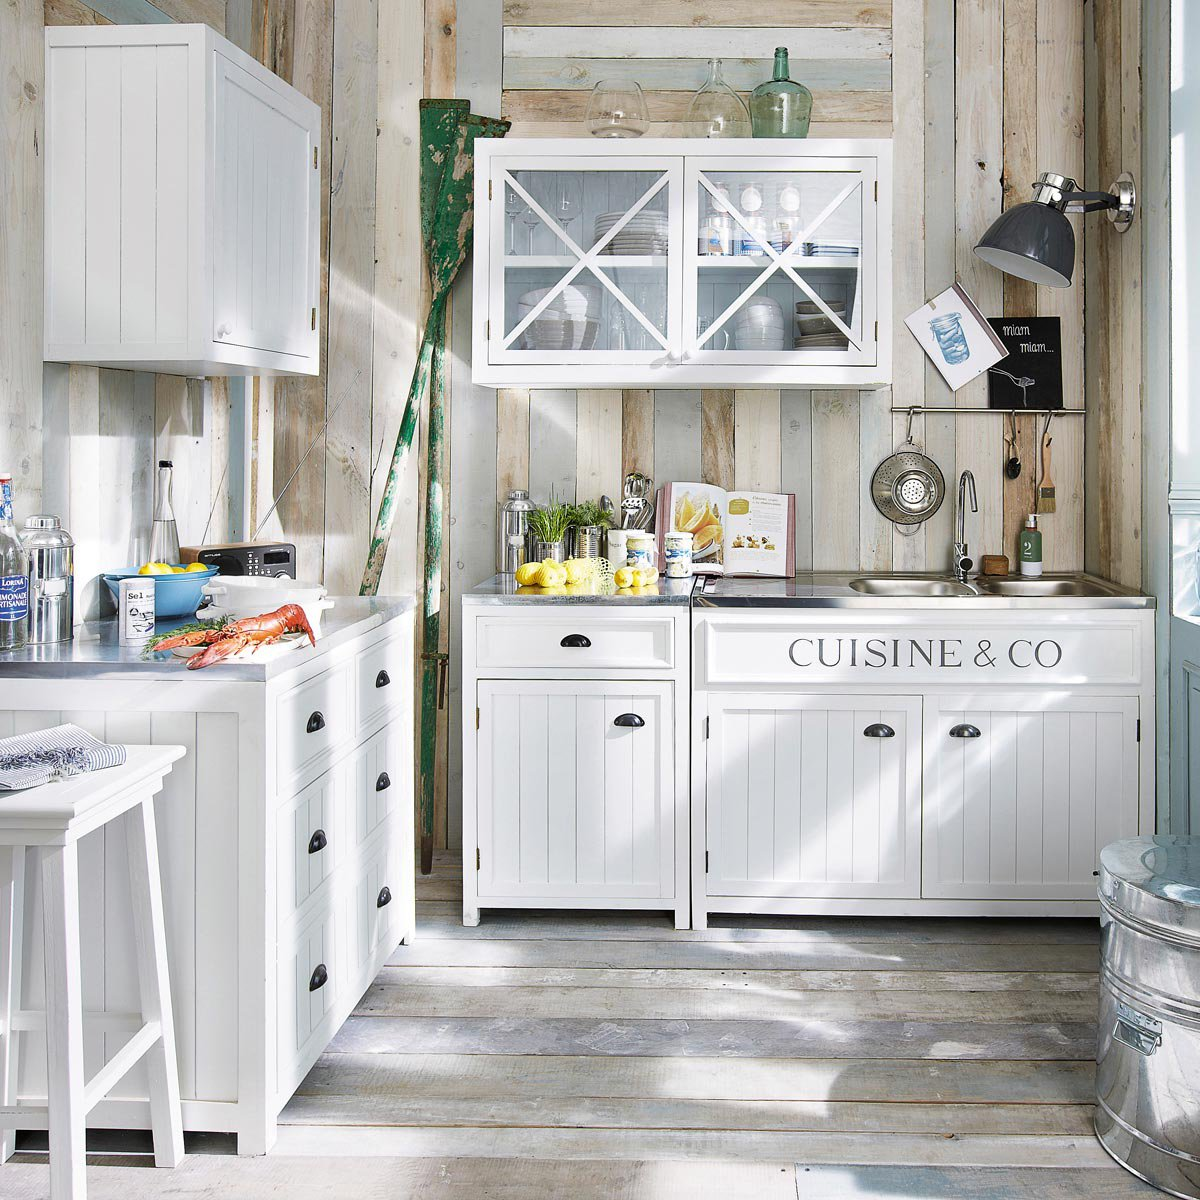 Boiserie c be inspired by cottage style Cuisine maison du monde